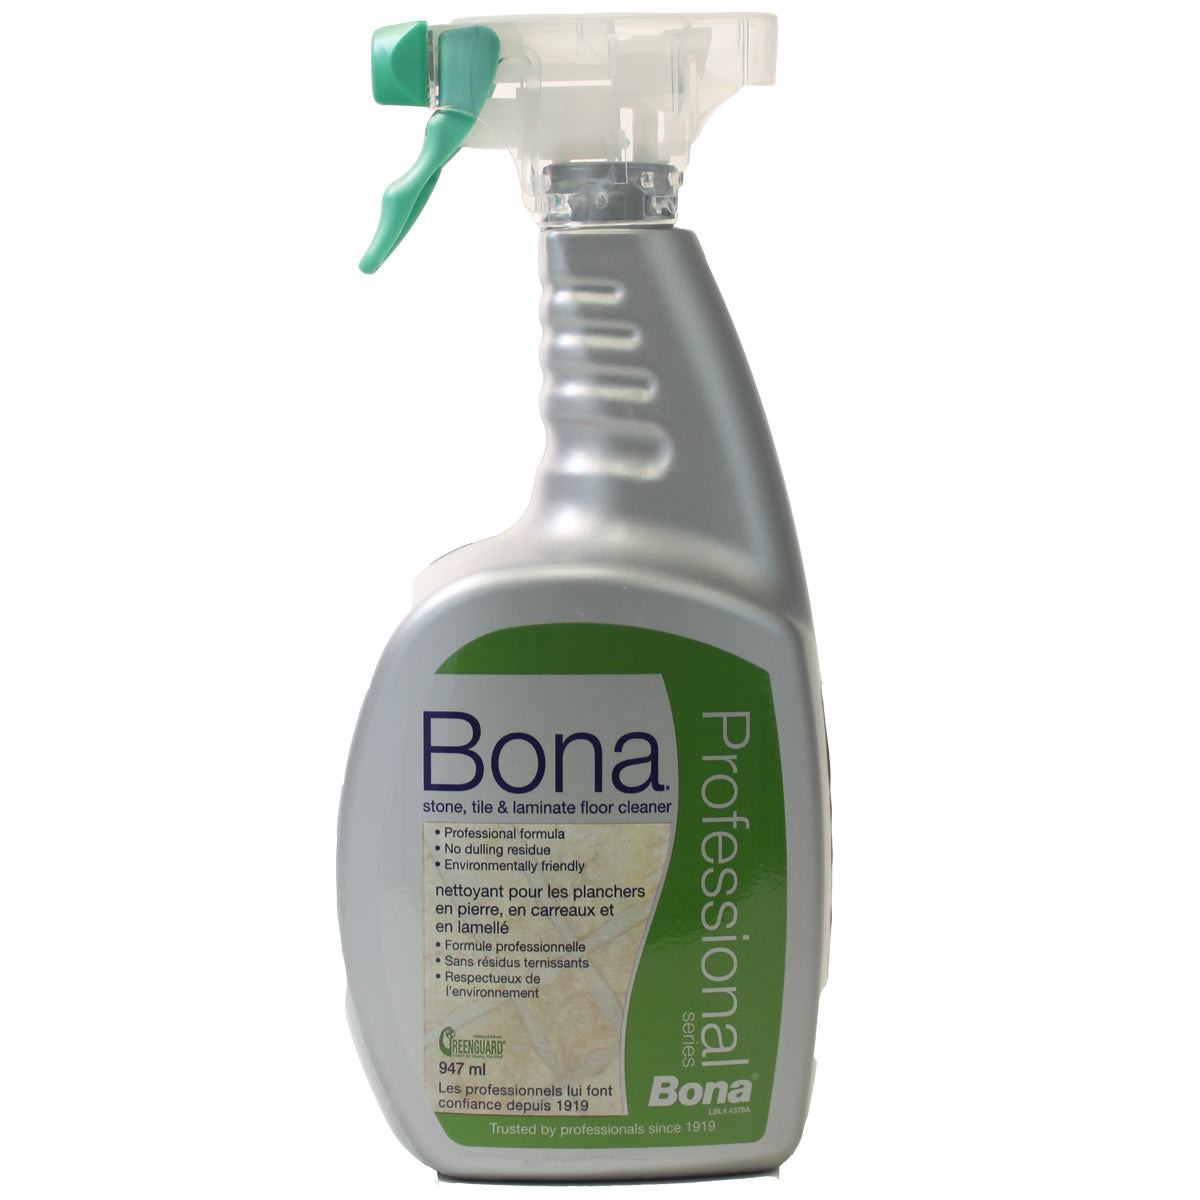 Bona Bona Stone Tile and Laminate Floor Cleaner Pro Series Spray 32oz Cleaning Products  - Vacuum Plus Canada